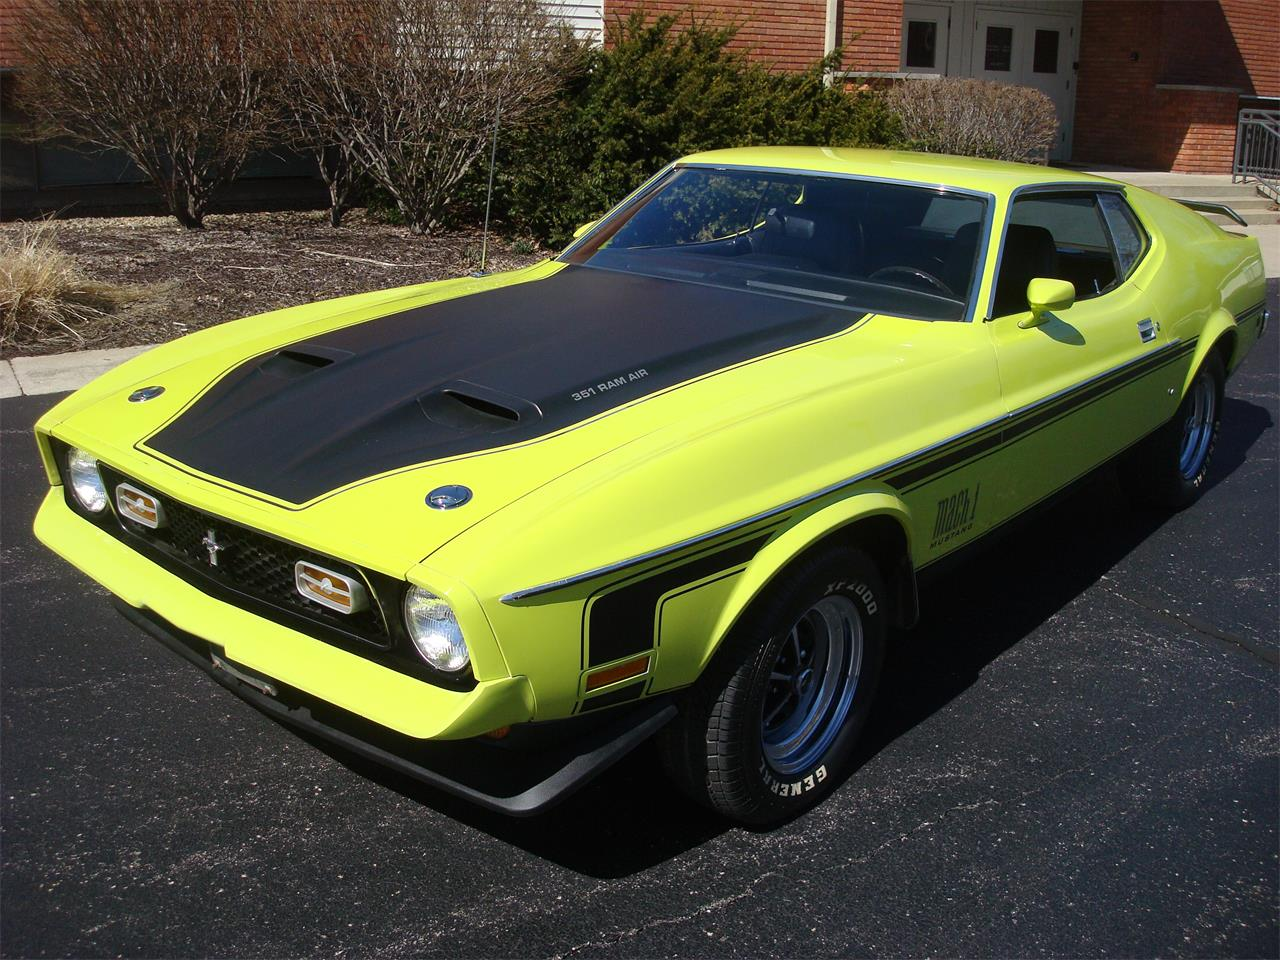 Large Picture of 1972 Mustang located in Illinois Offered by Naperville Auto Haus - NQ5T